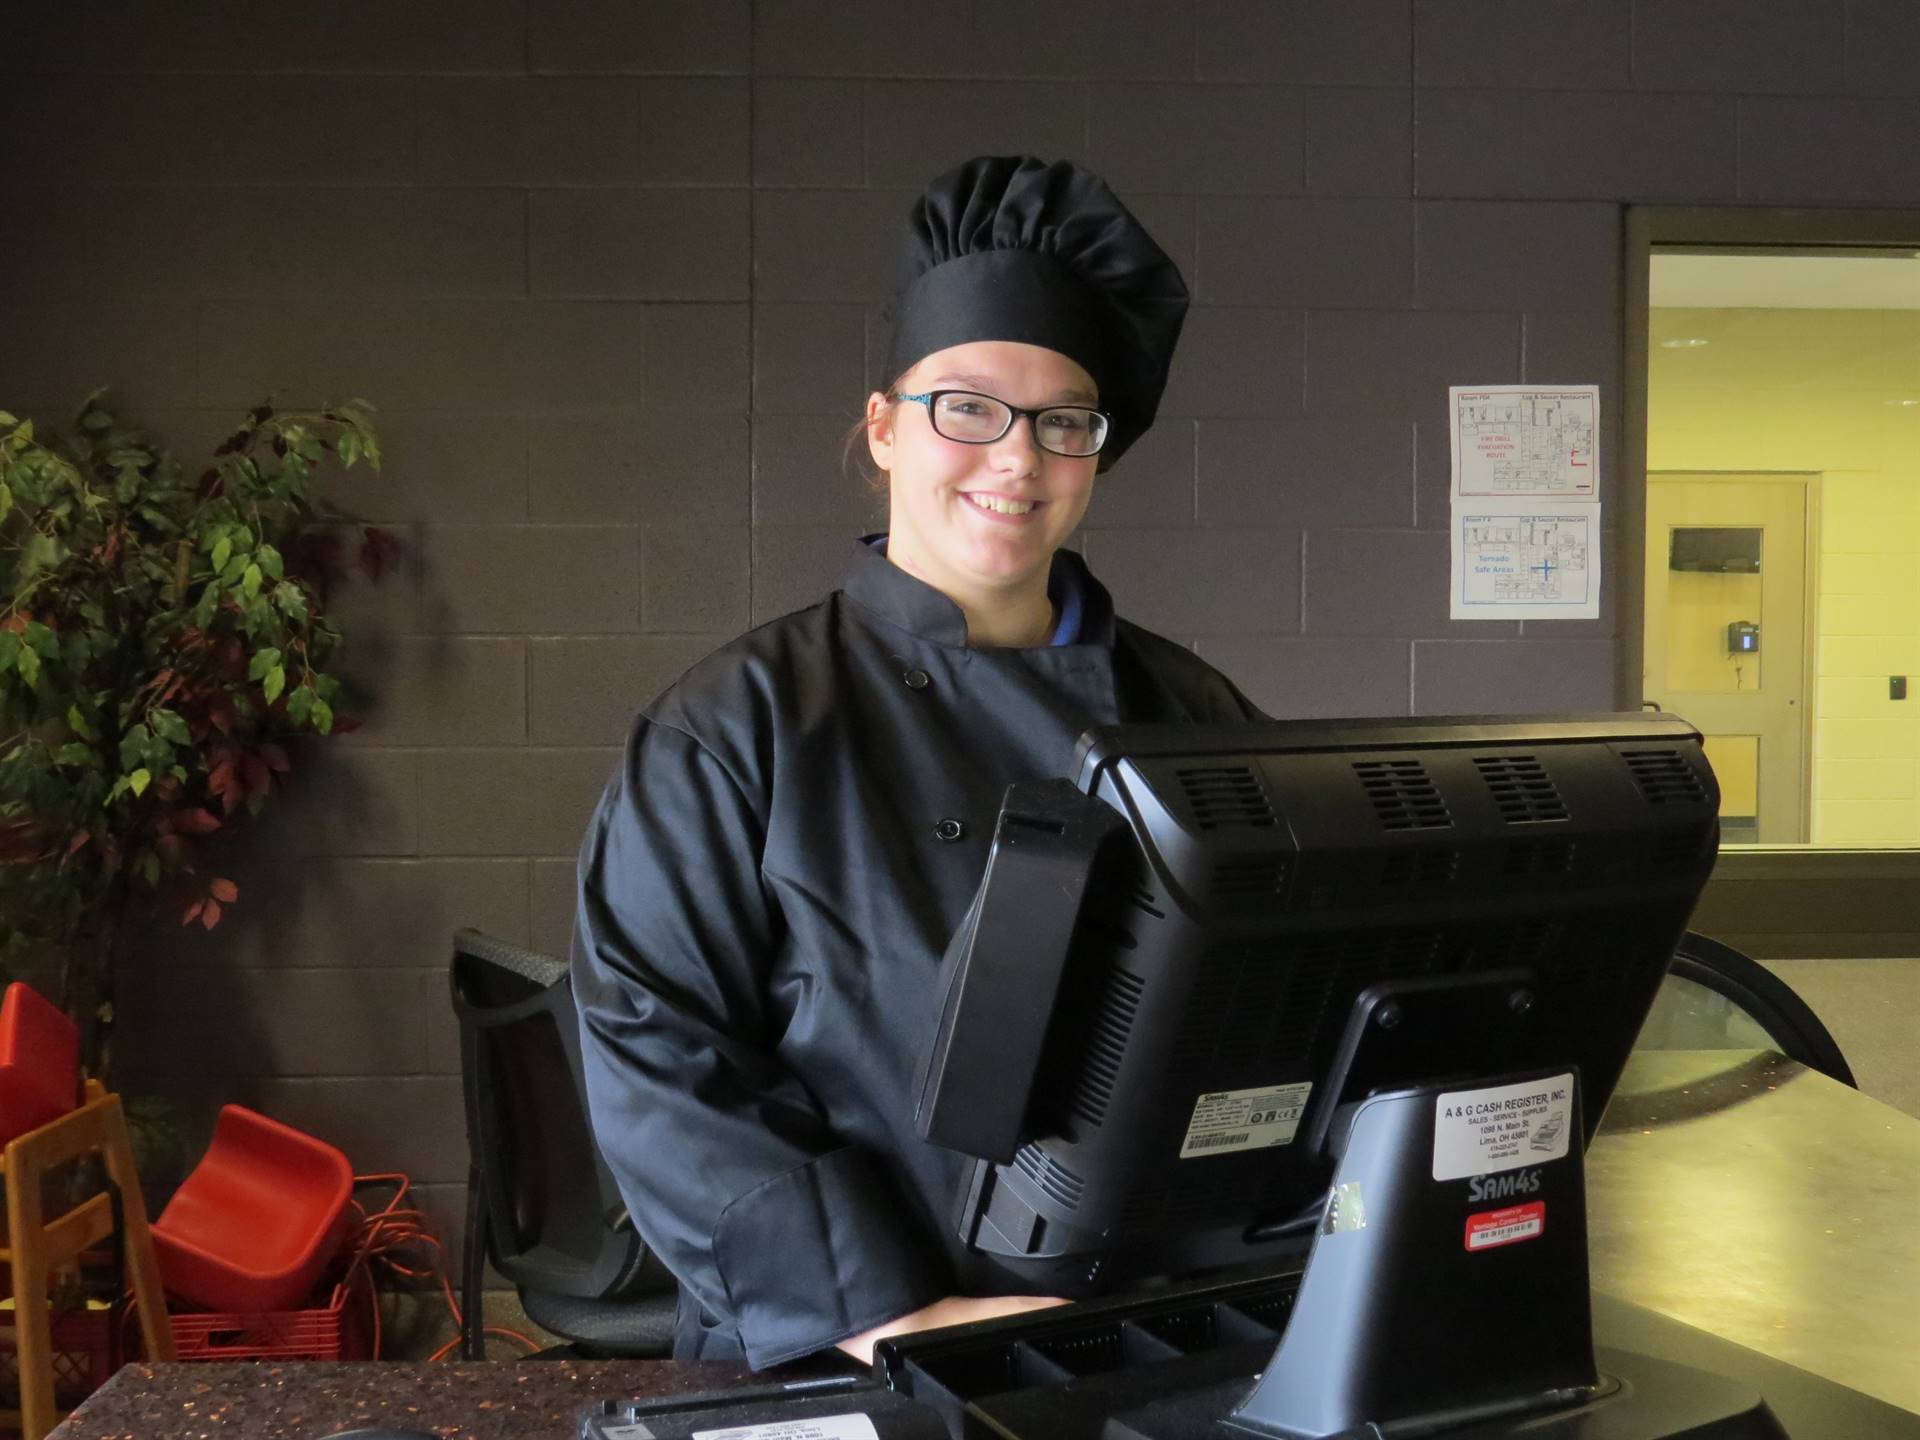 Female culinary arts student smiling at the cash register